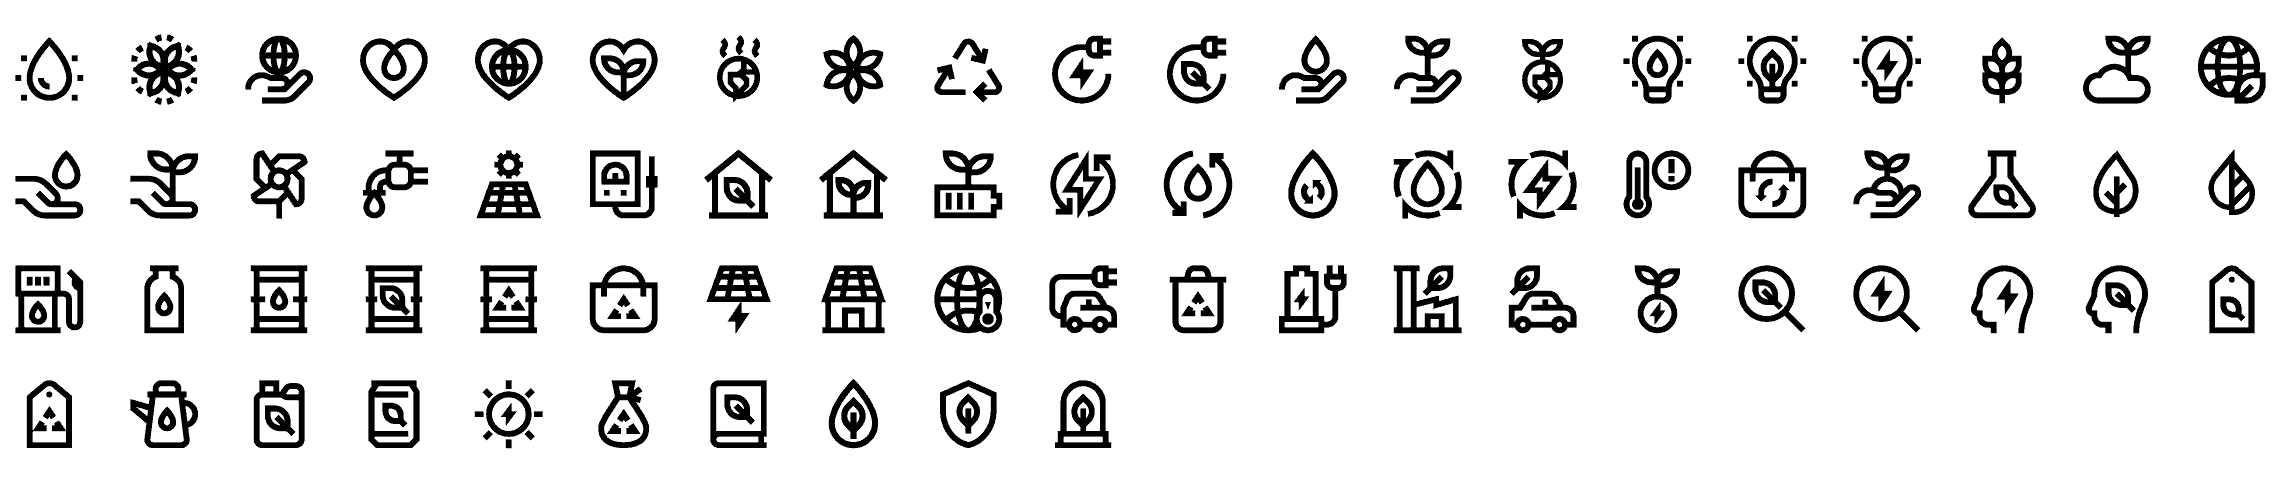 ecology-mini-bold-icons-preview-settings